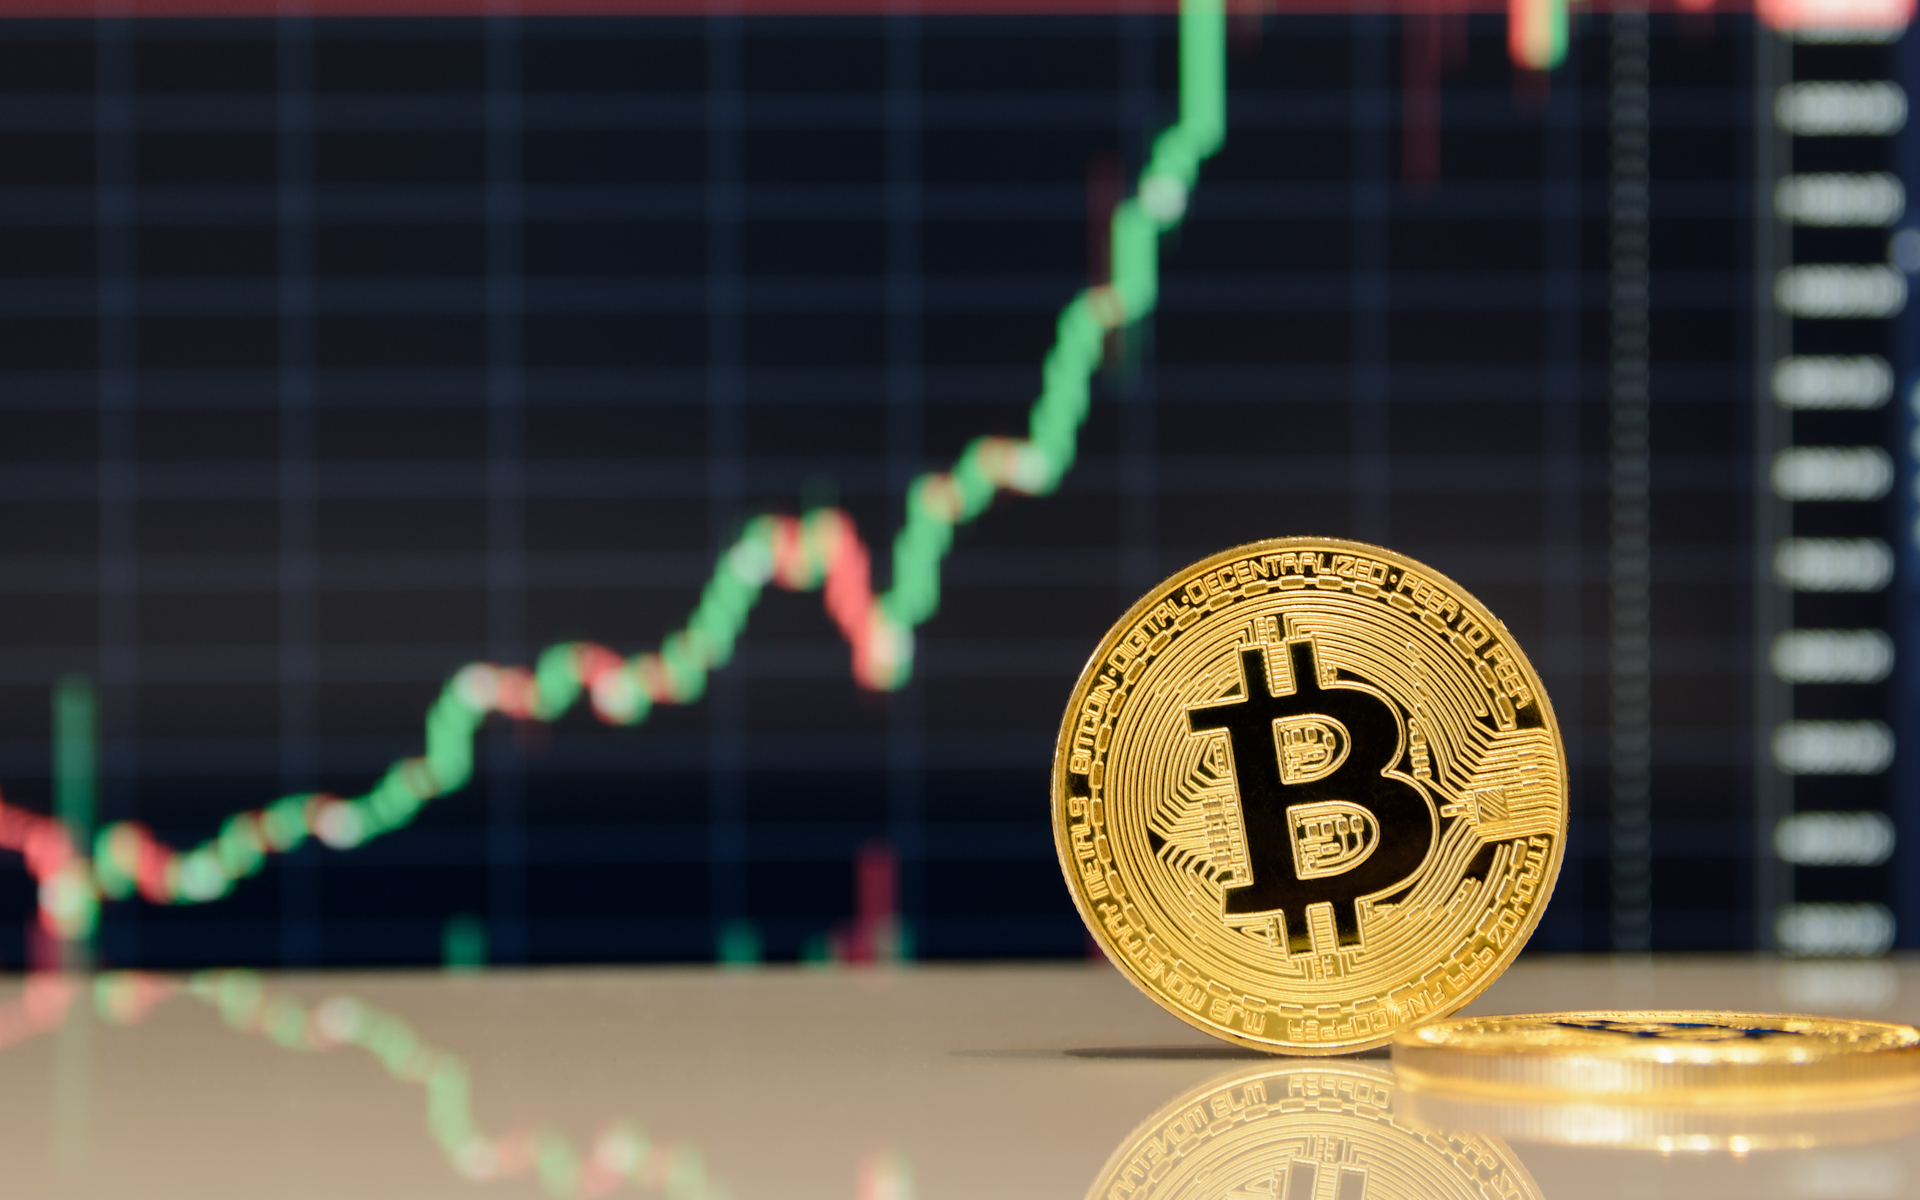 Not April Fools: Why the US Dollar Will 'Print' Bitcoin to $100 Trillion